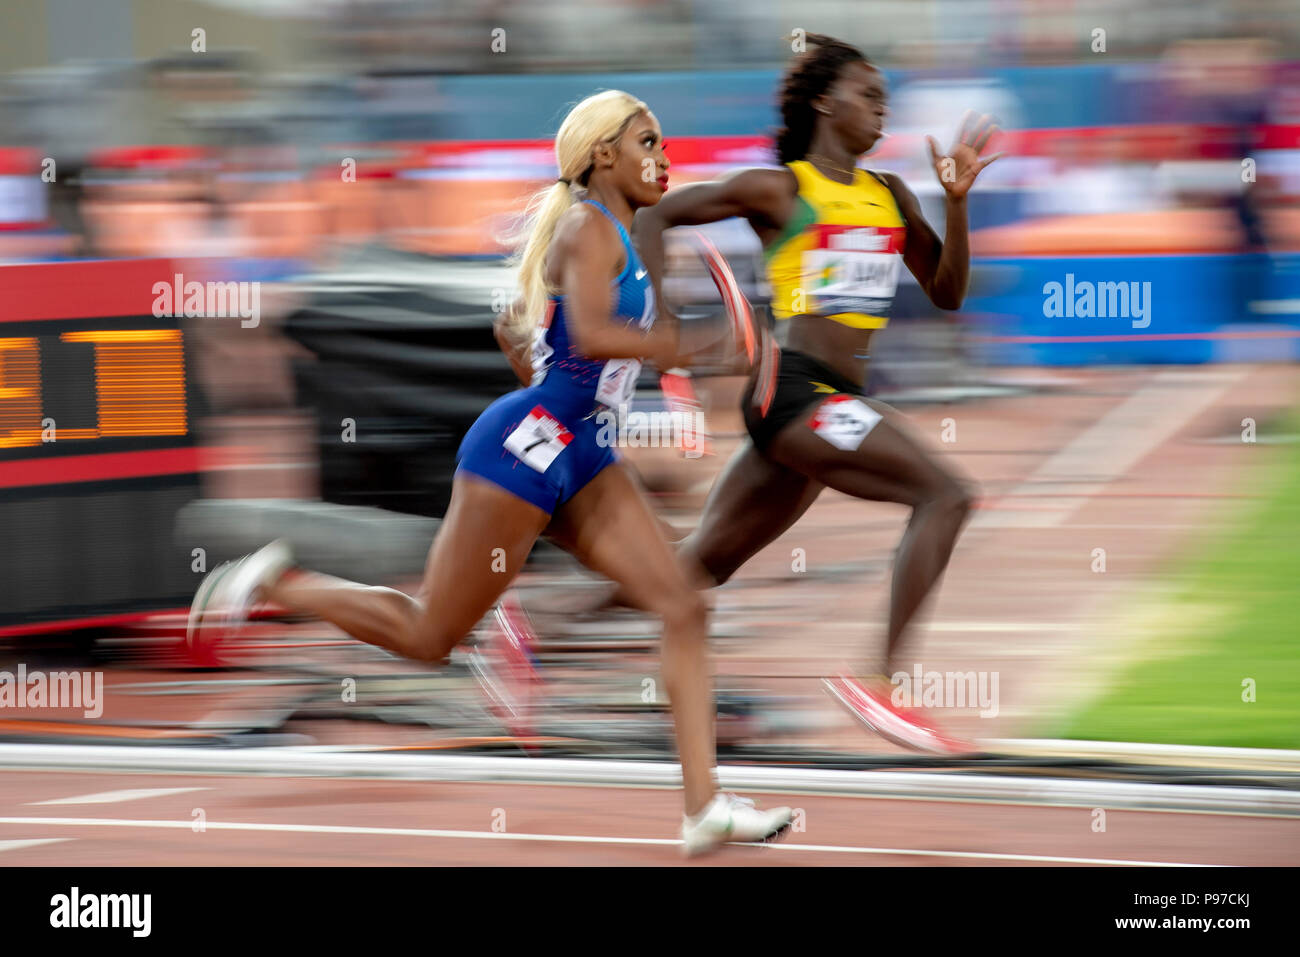 London, UK. 14th July 2018. The Athletics World Cup  at the London Stadium, London, Great Britiain, on 14 July 2018. Credit: Andrew Peat/Alamy Live News - Stock Image